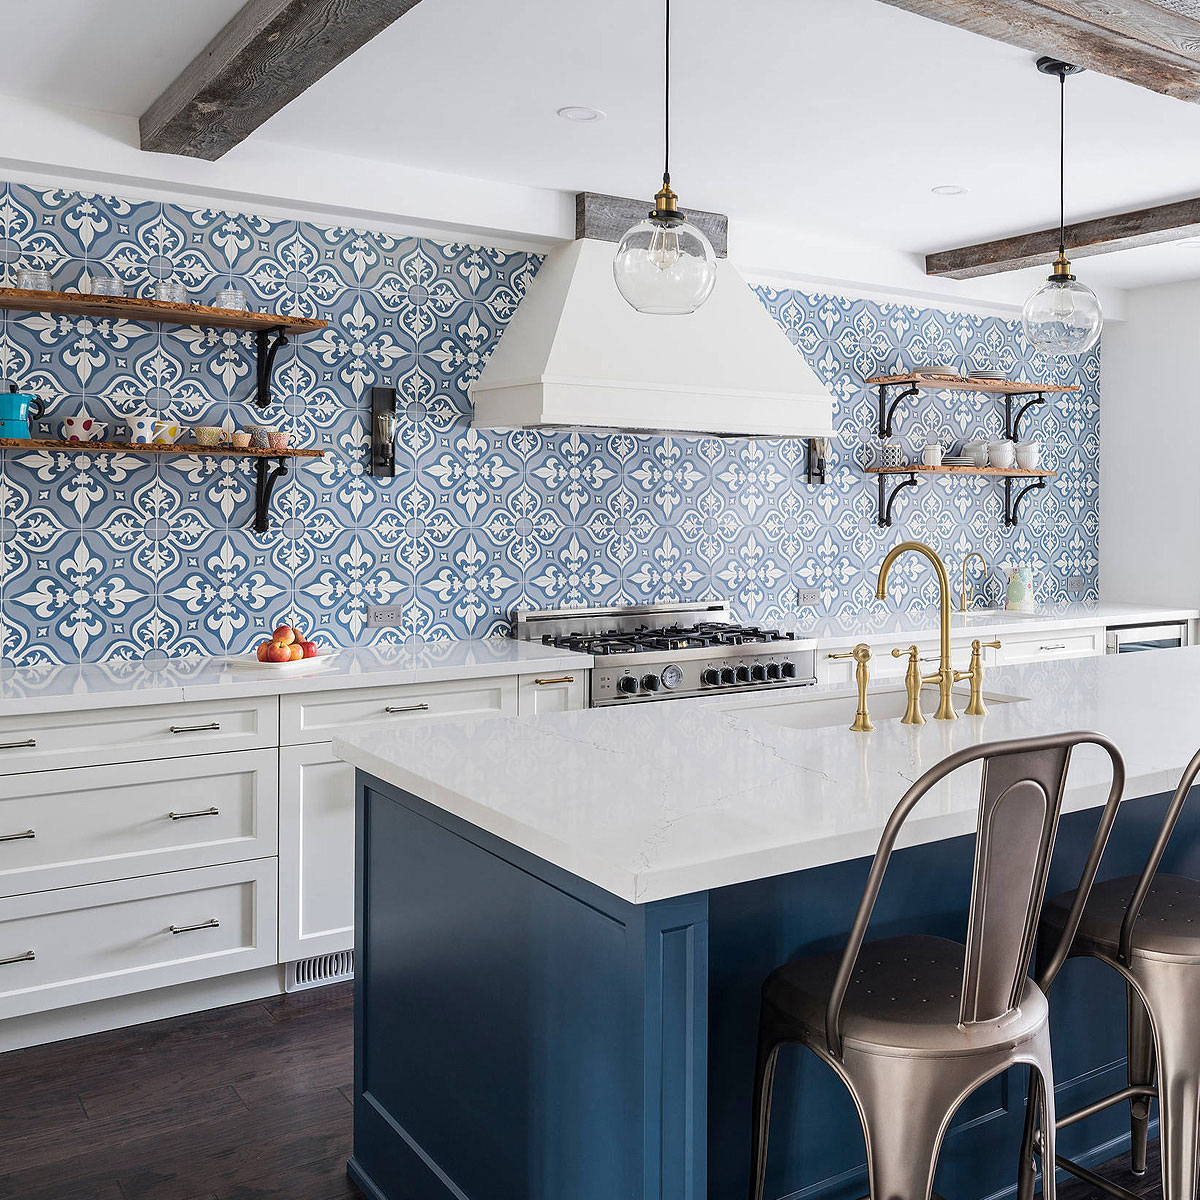 75 Blue Backsplash Ideas Navy Aqua Royal Or Coastal Blue Design